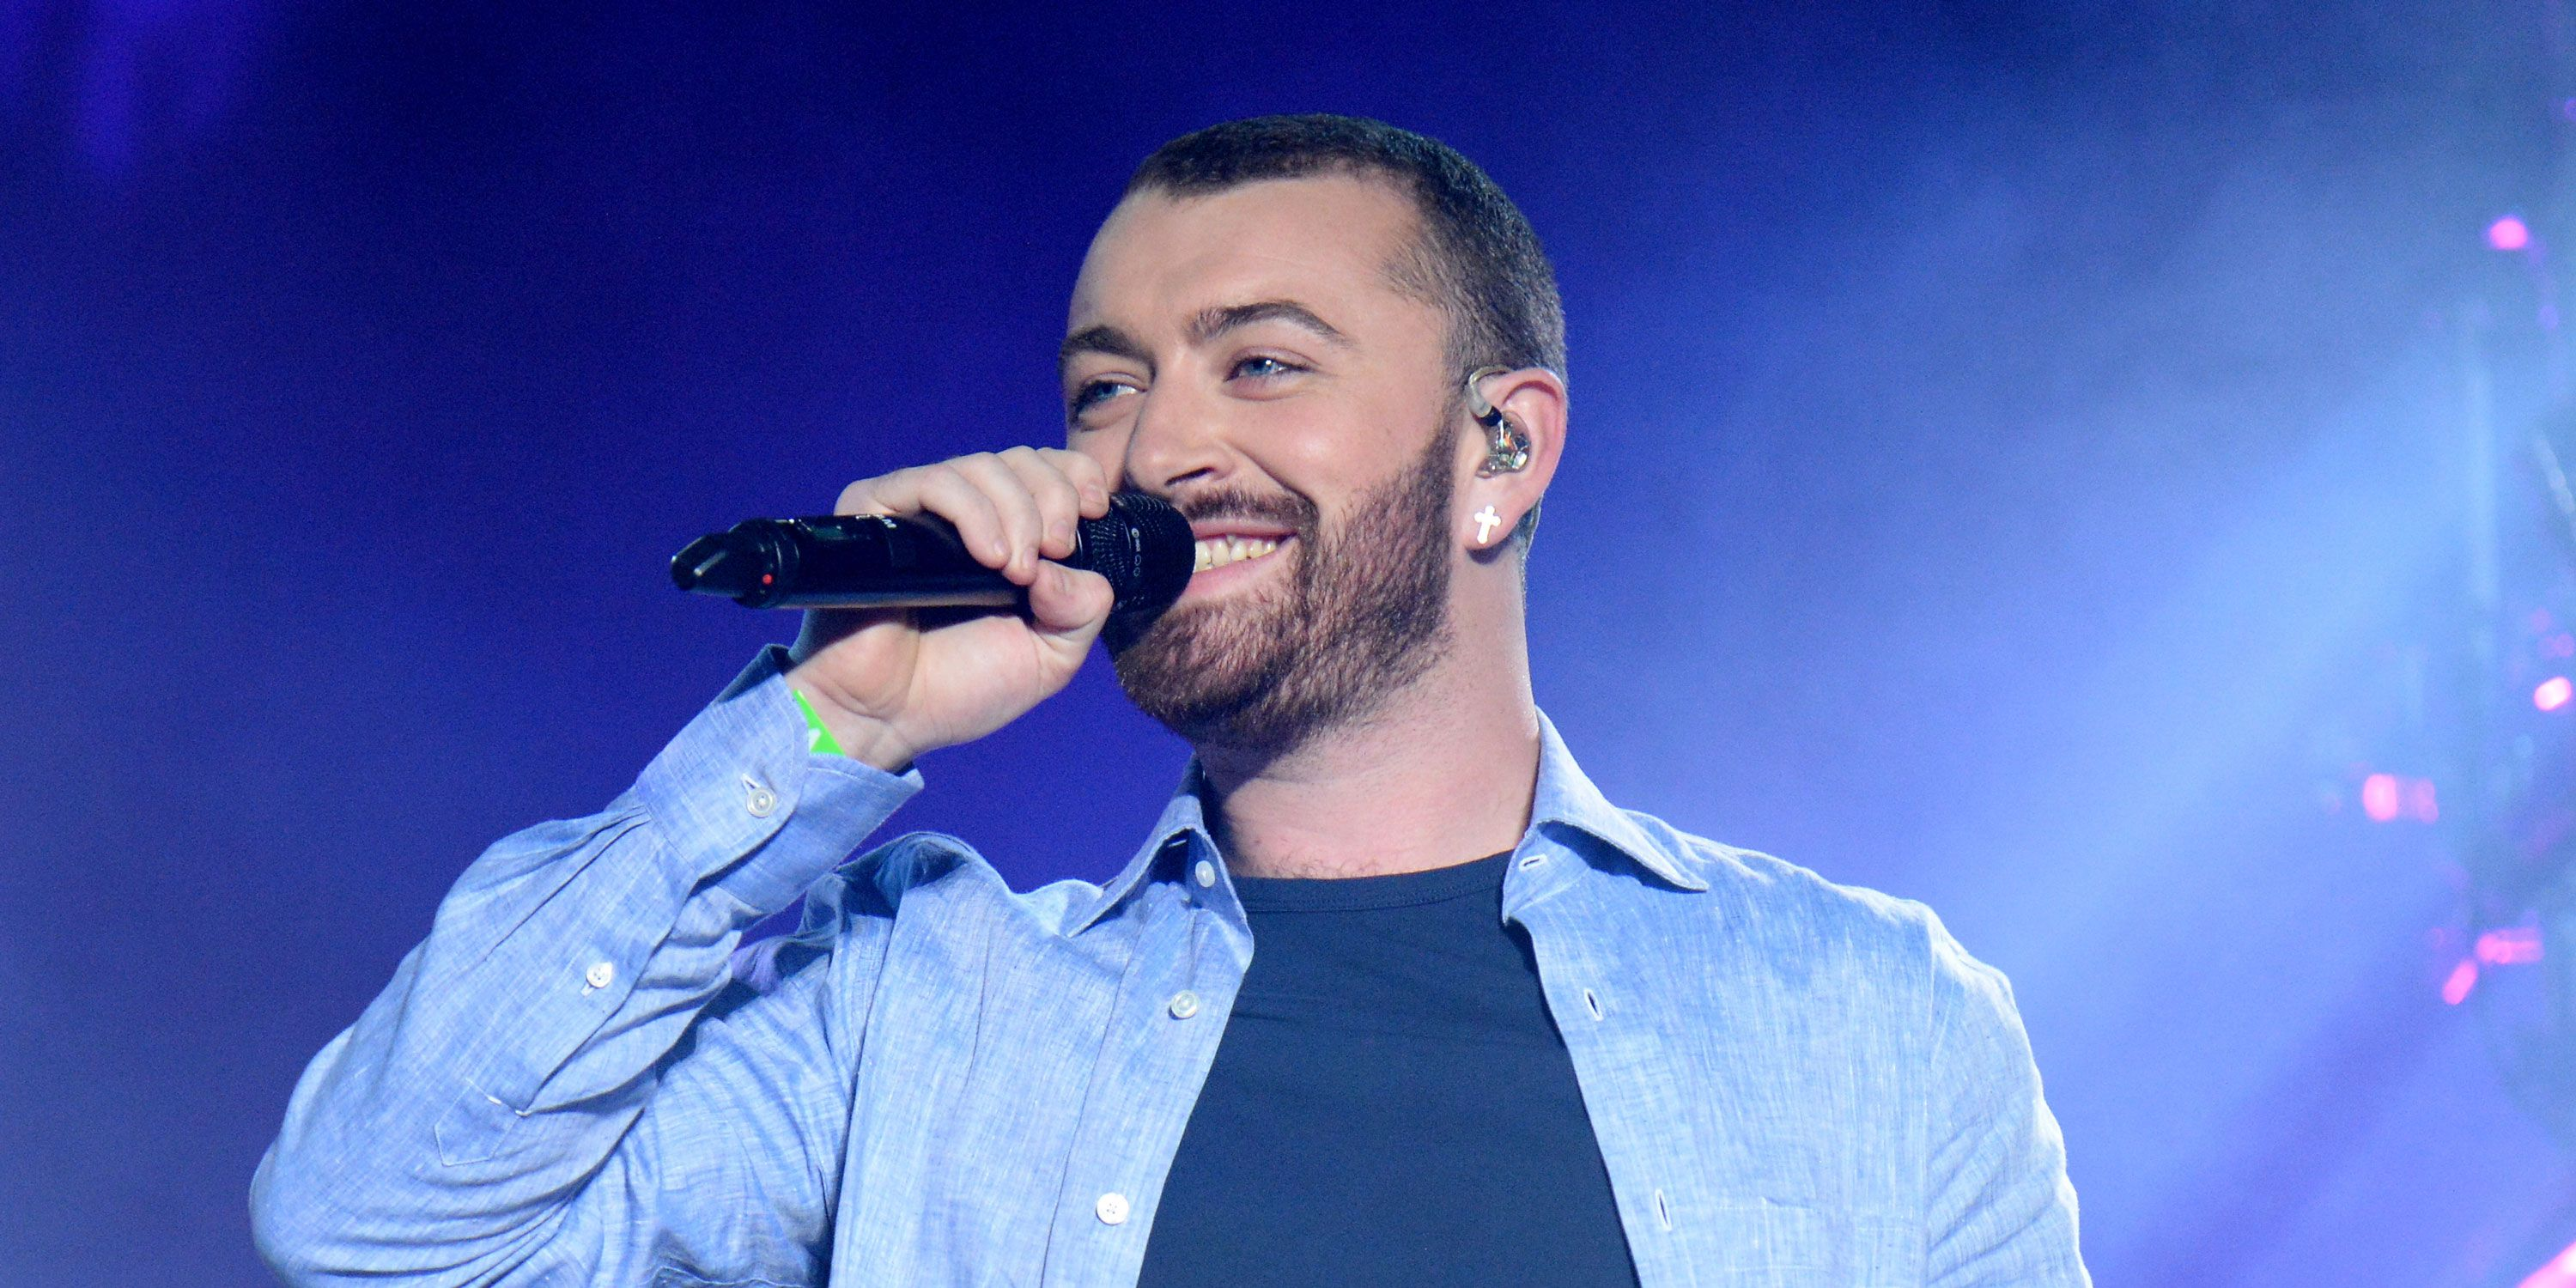 Sam Smith teases musical comeback with this photo